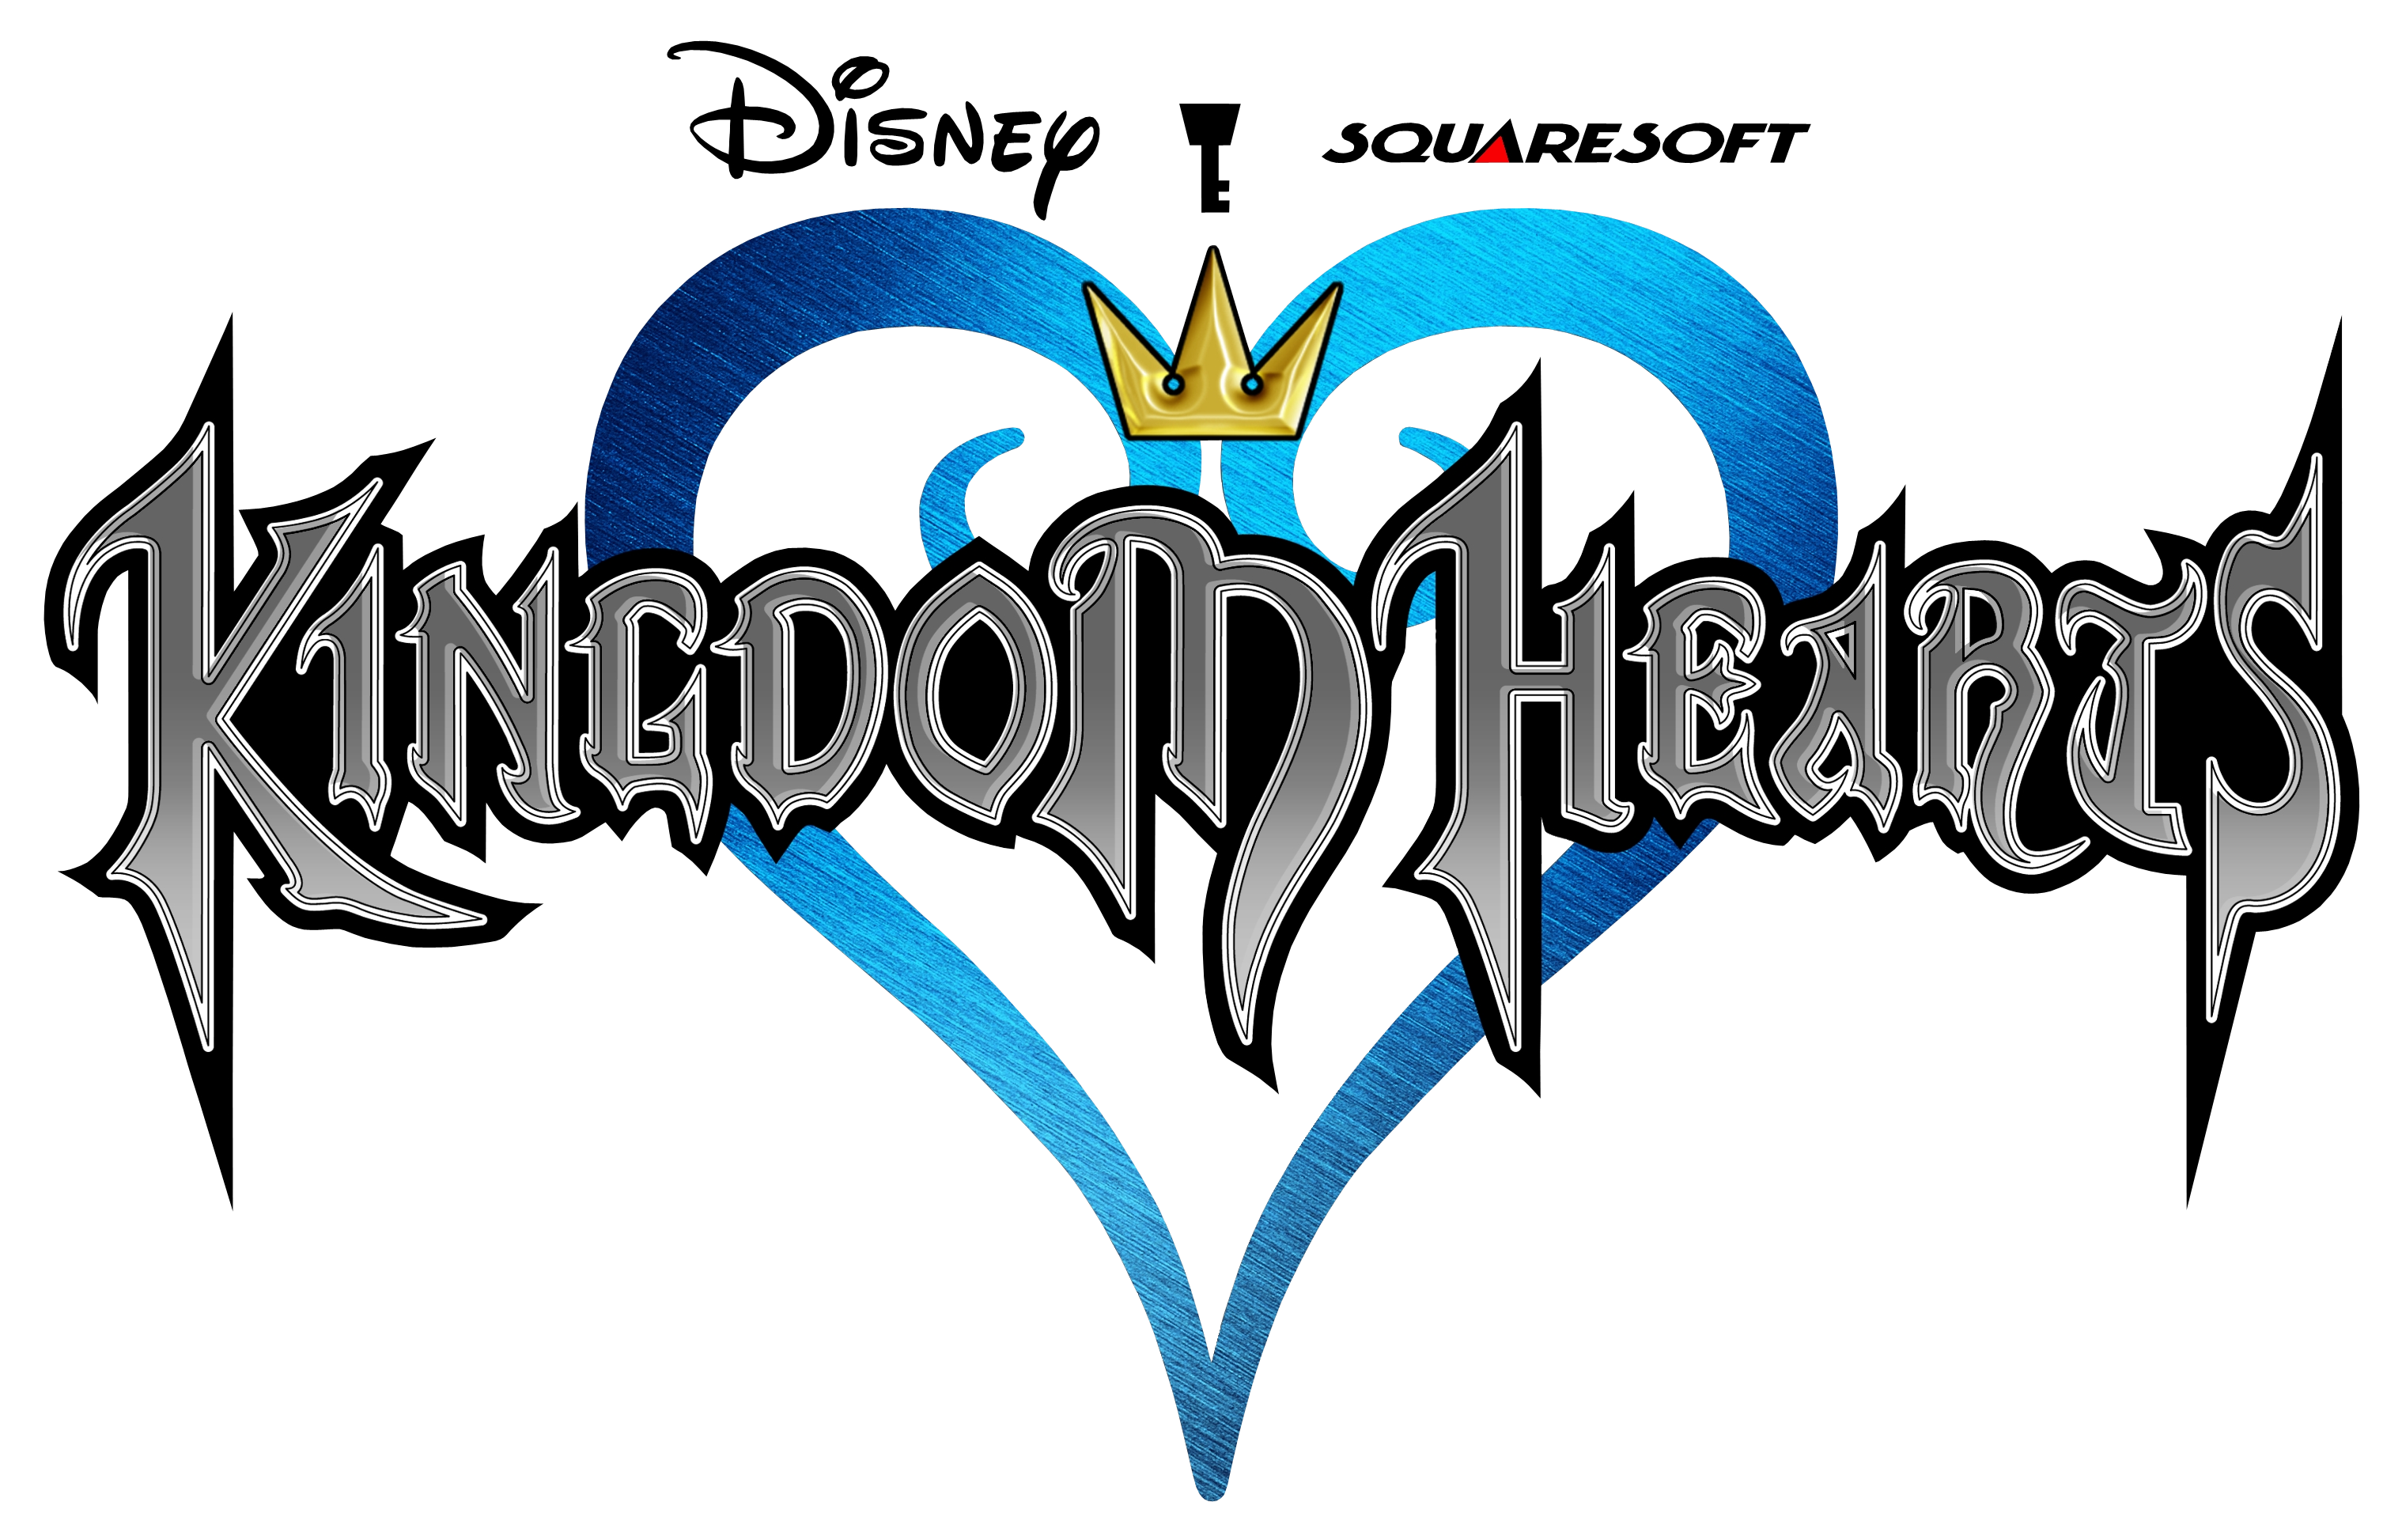 http://img3.wikia.nocookie.net/__cb20130624021312/playstationallstarsfanfictionroyale/images/e/eb/Kingdom-Hearts-Blue-Logo.png